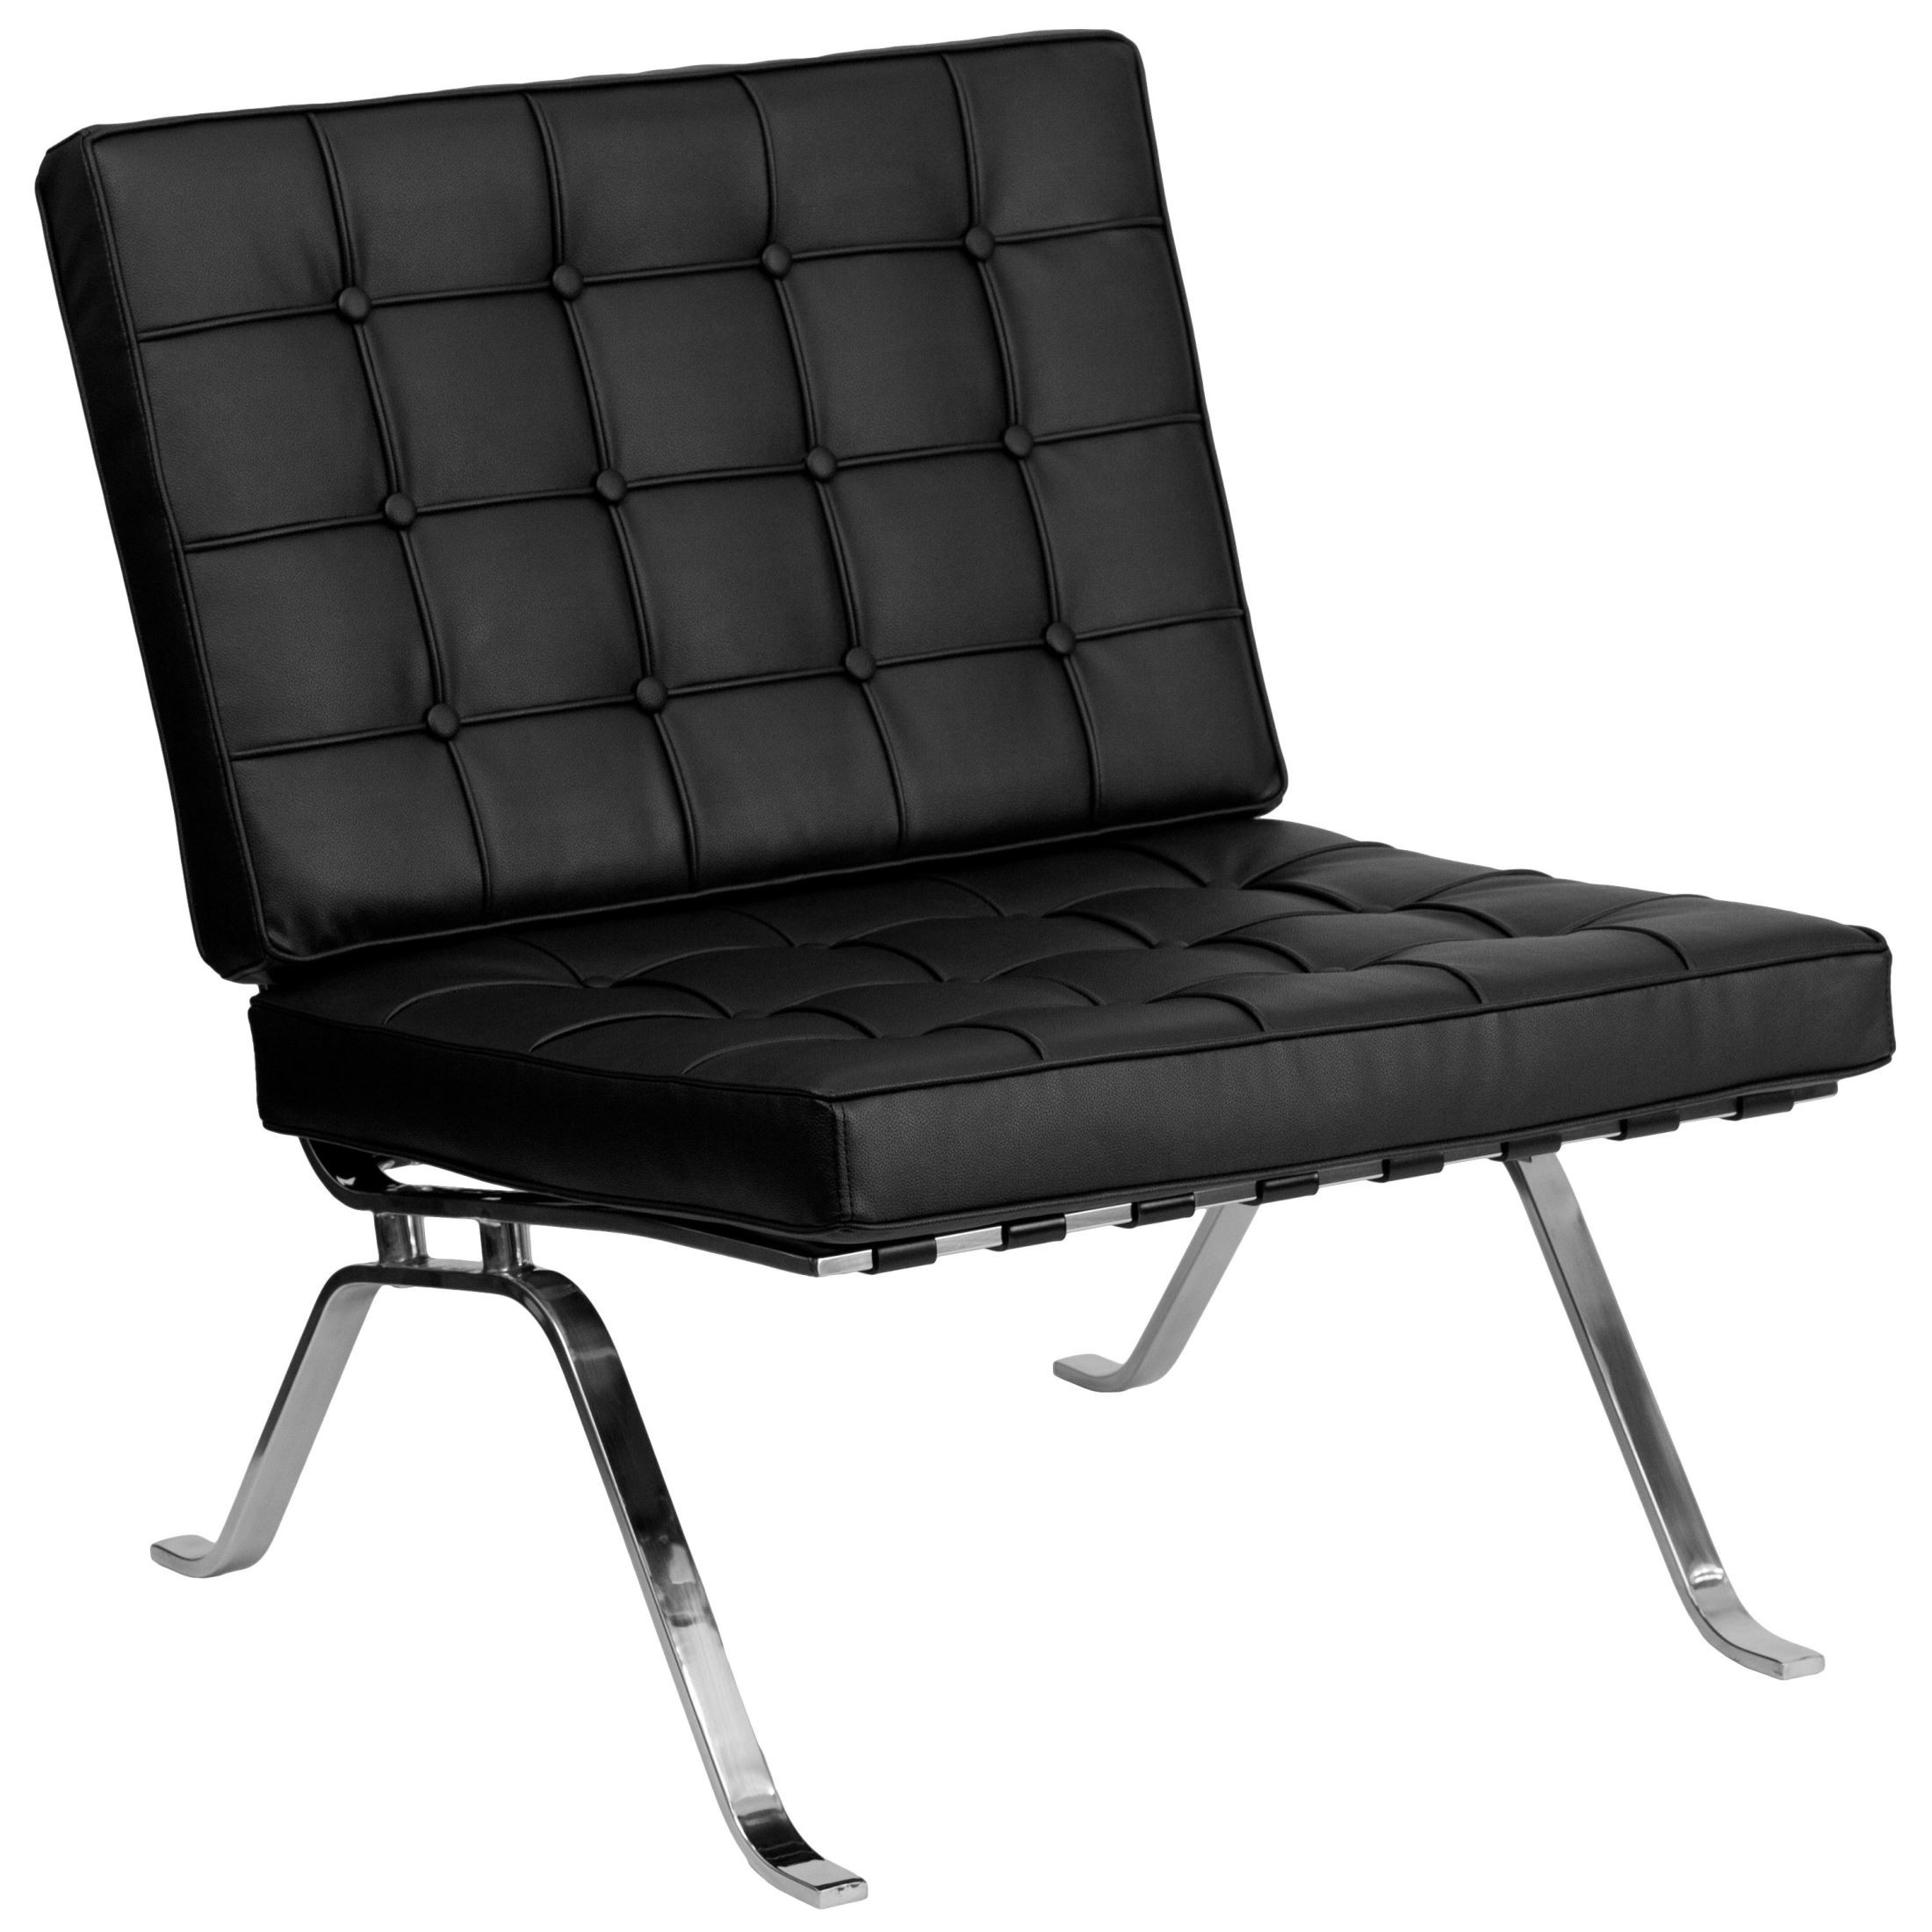 Black Leather Lounge Chair Hercules Flash Series Black Leather Lounge Chair With